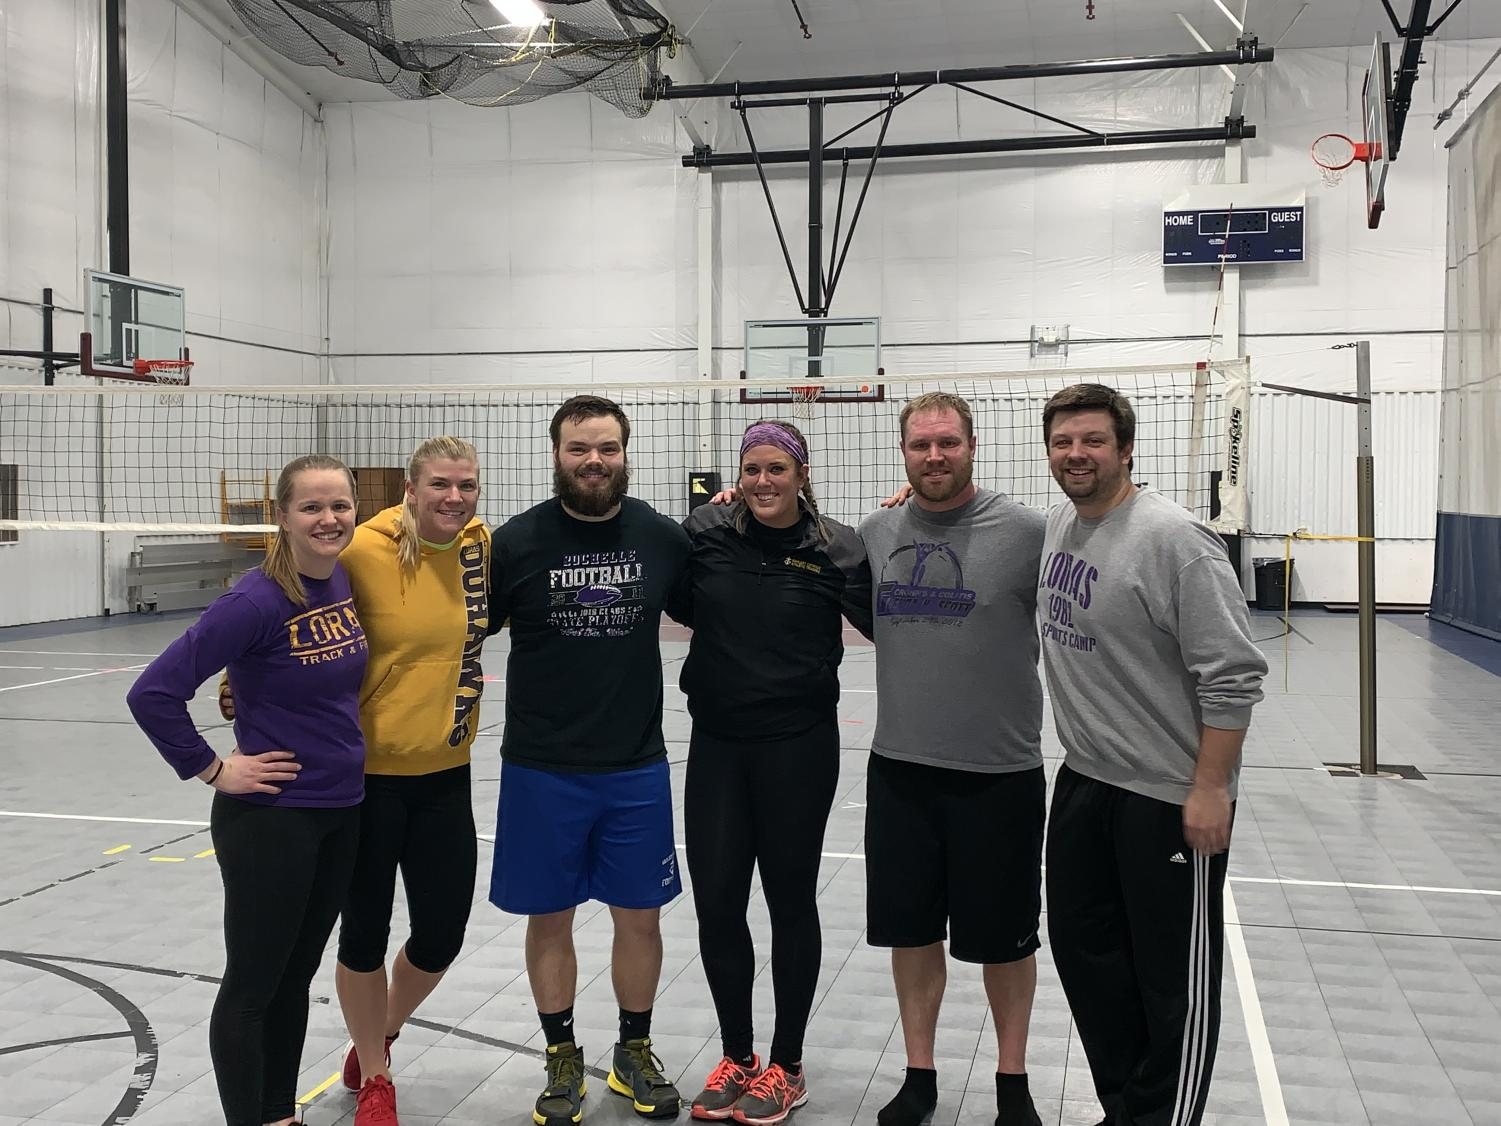 Wahlert teachers team up to compete in a rec volleyball league at Courtside.